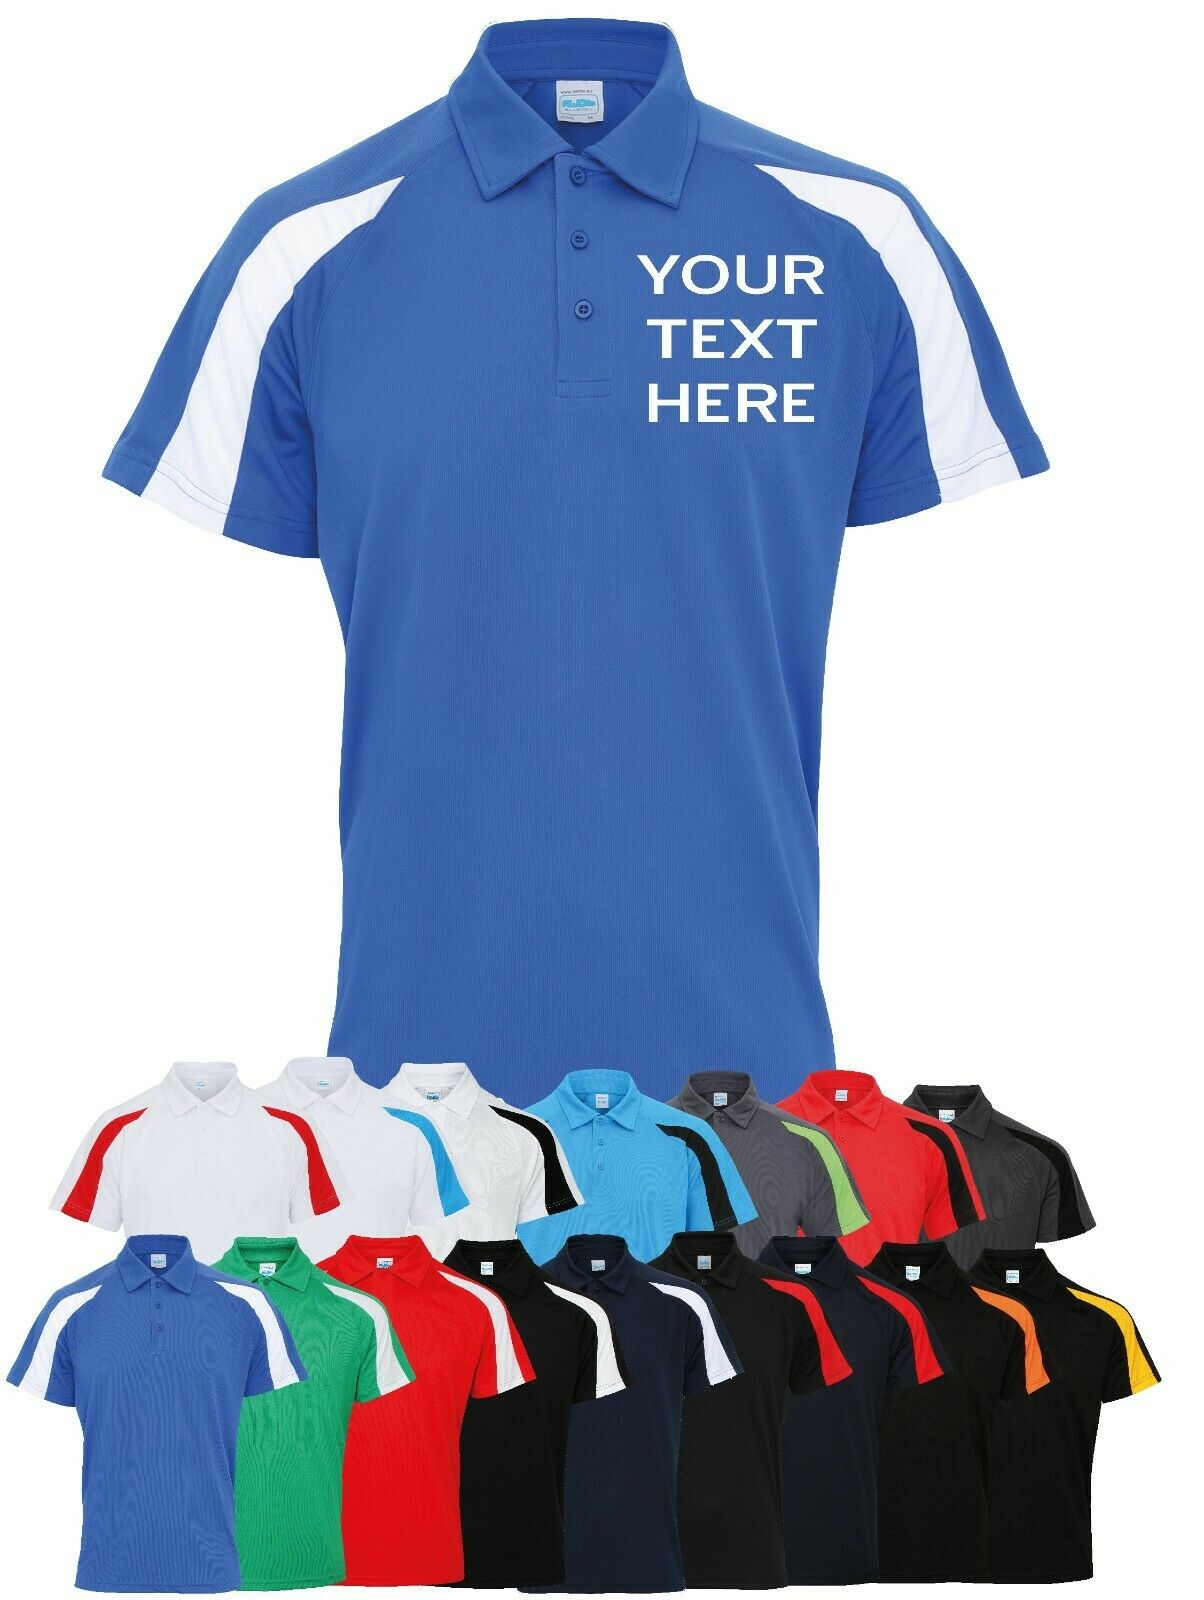 Personalised Text /& Logo Embroidered Polo Shirt Uniform Workwear Custom Tee Top